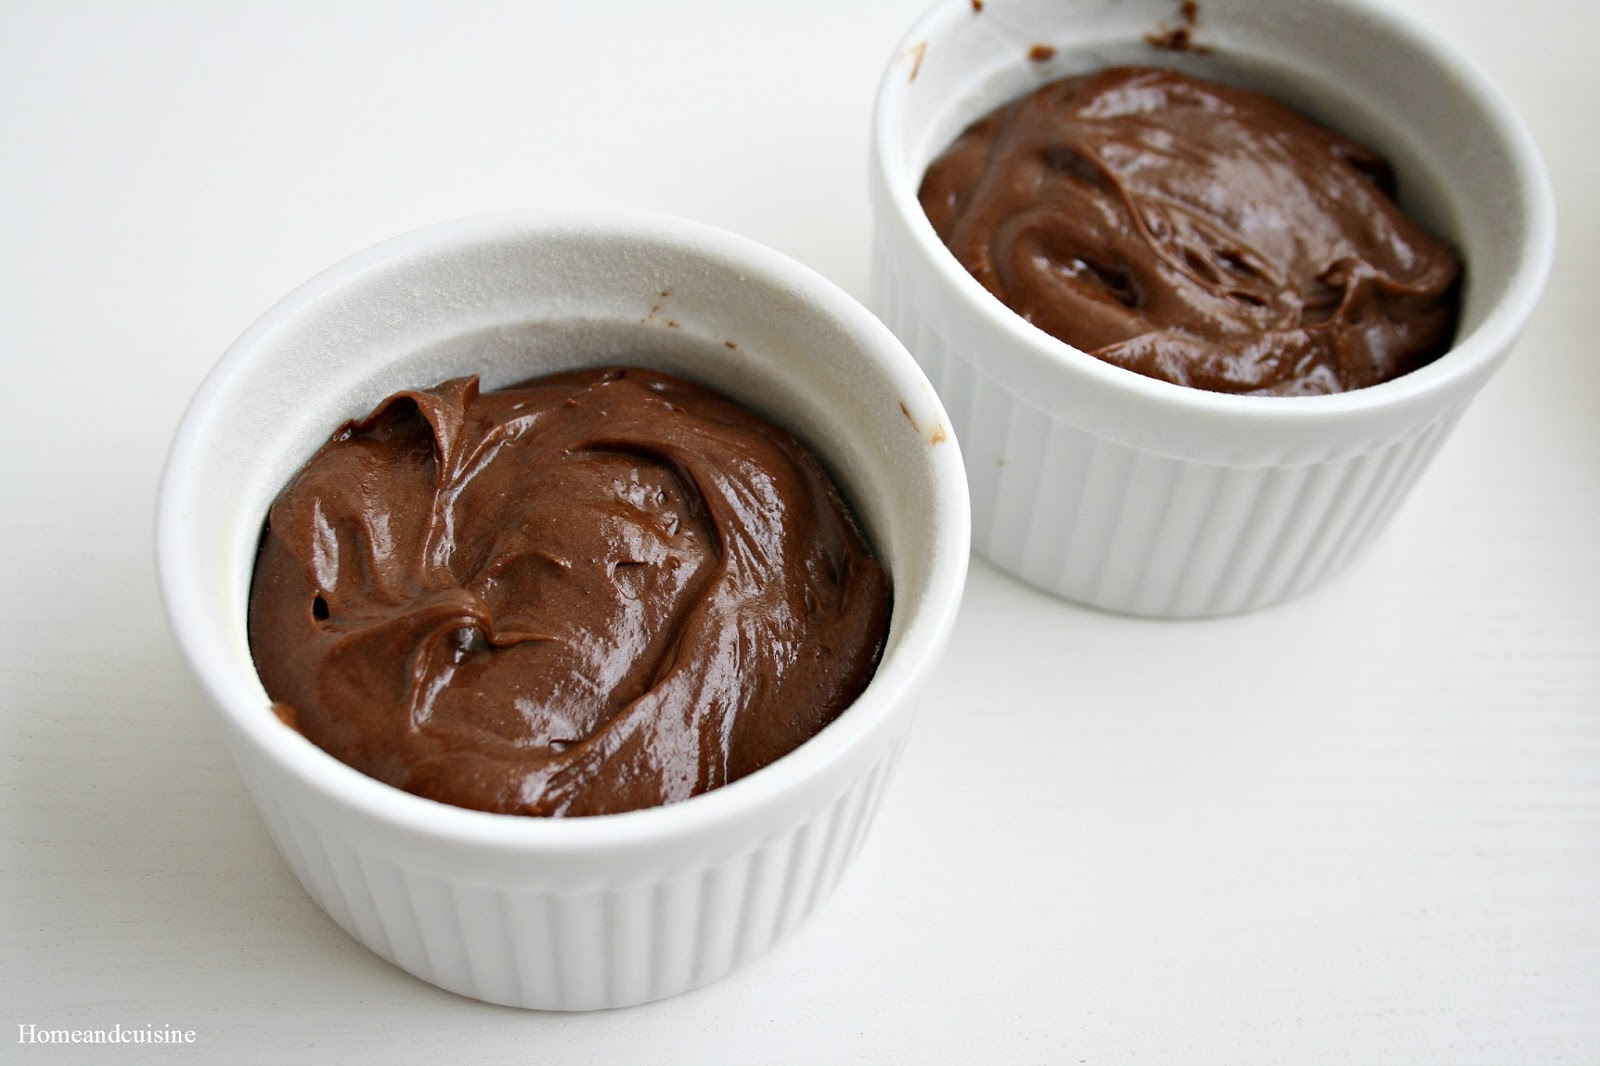 Home Style and Cuisine: Chocolate Fondant